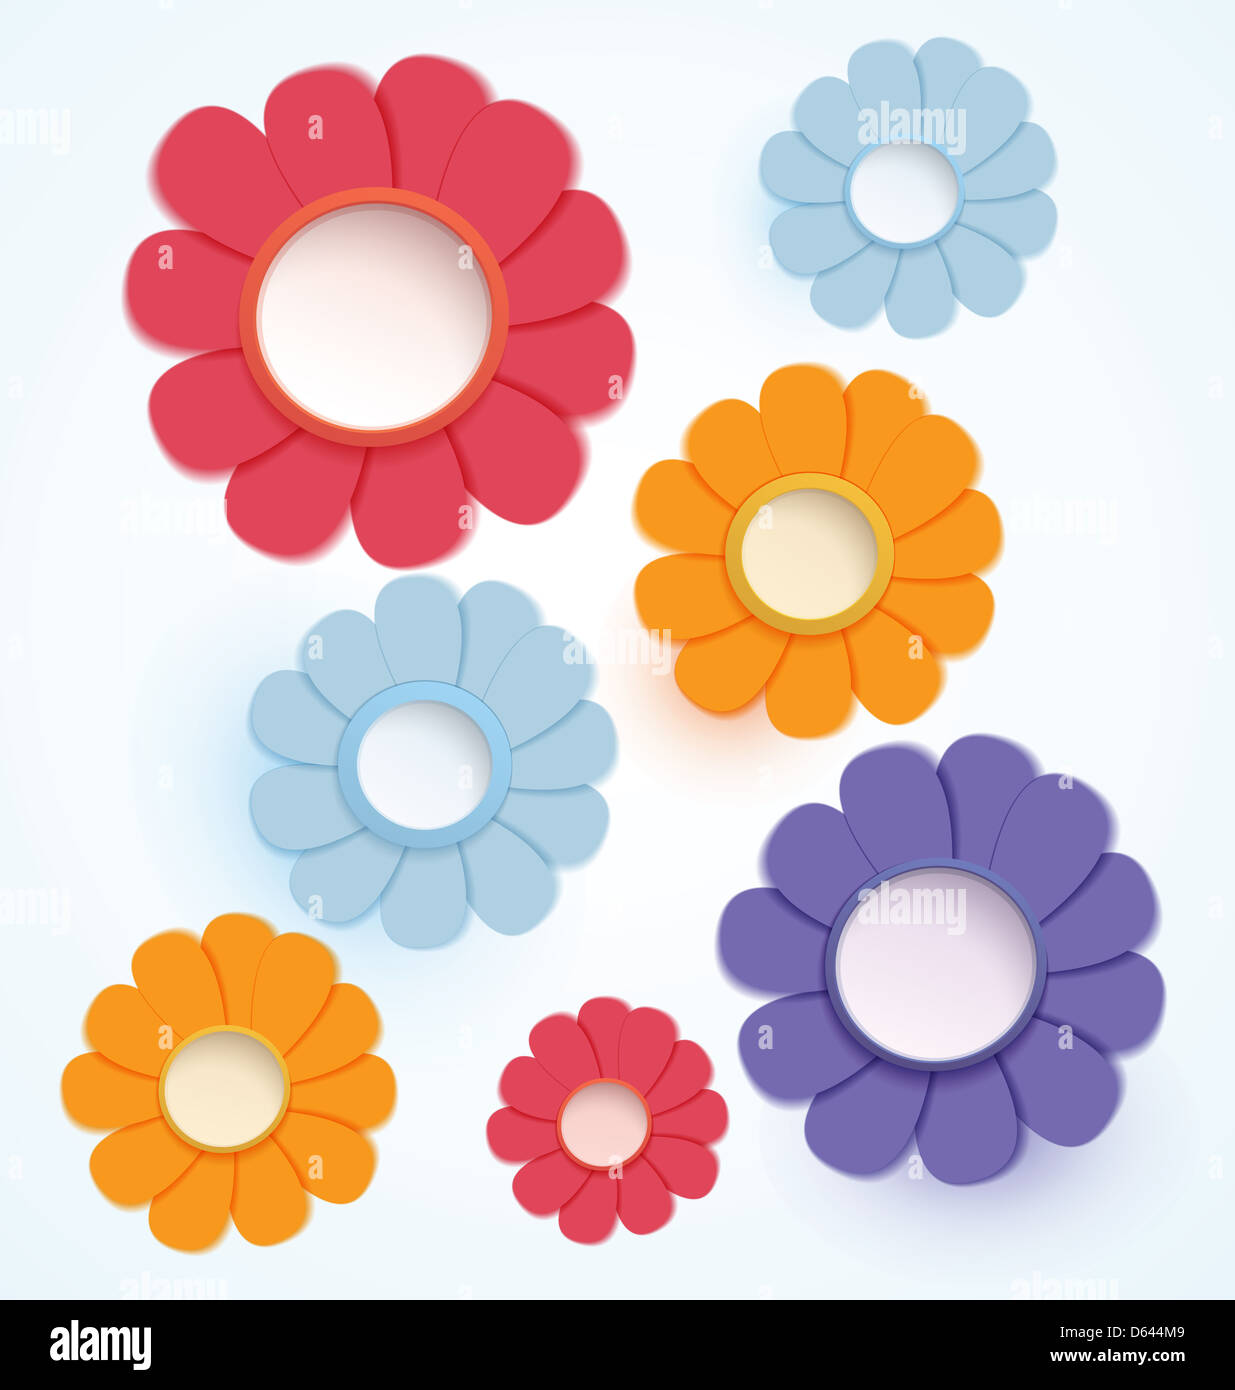 Flowers paper crafted - Stock Image